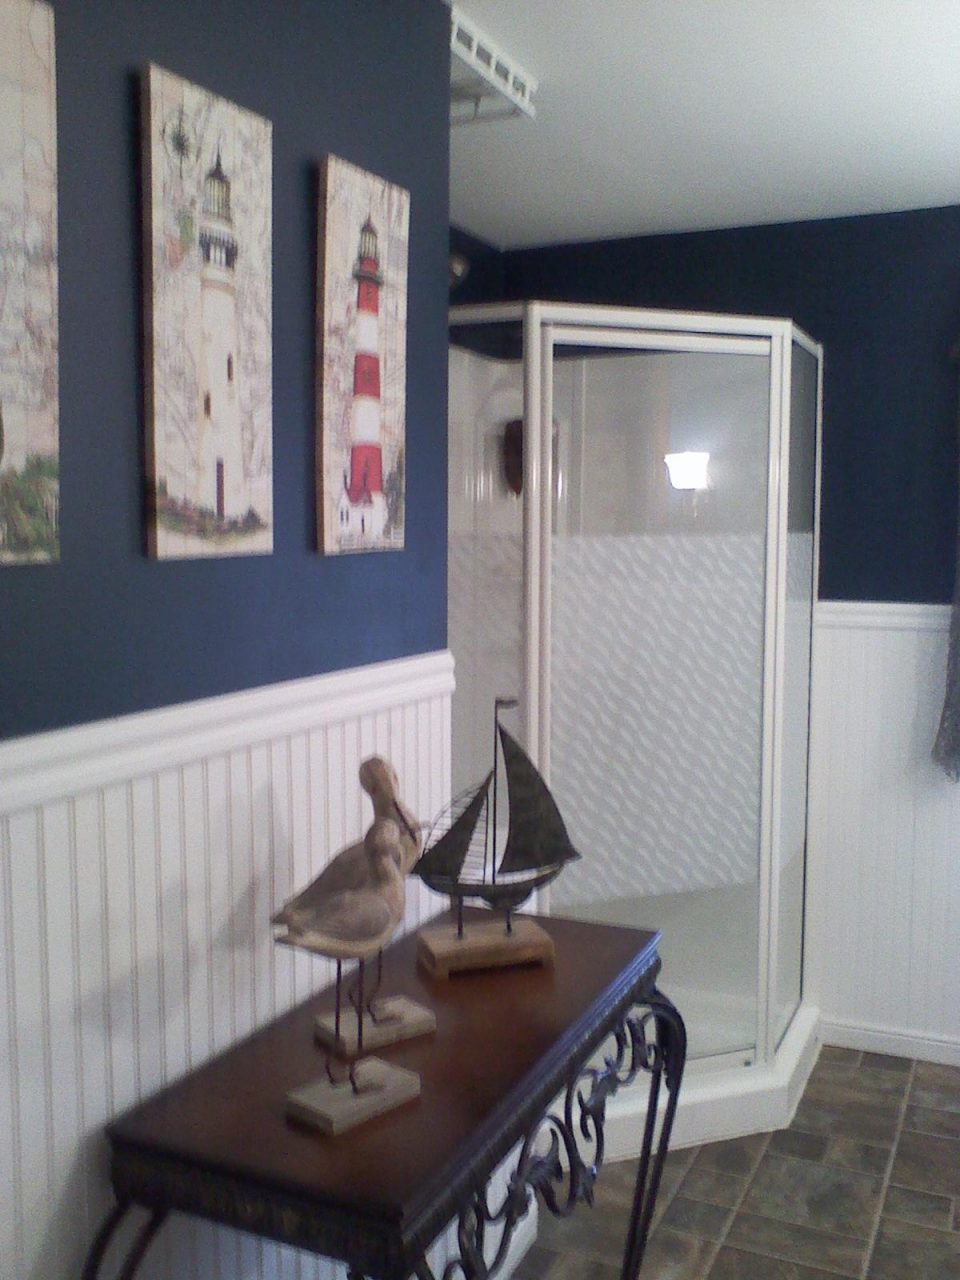 Nautical Bathroom Decor Photos And Products Ideas